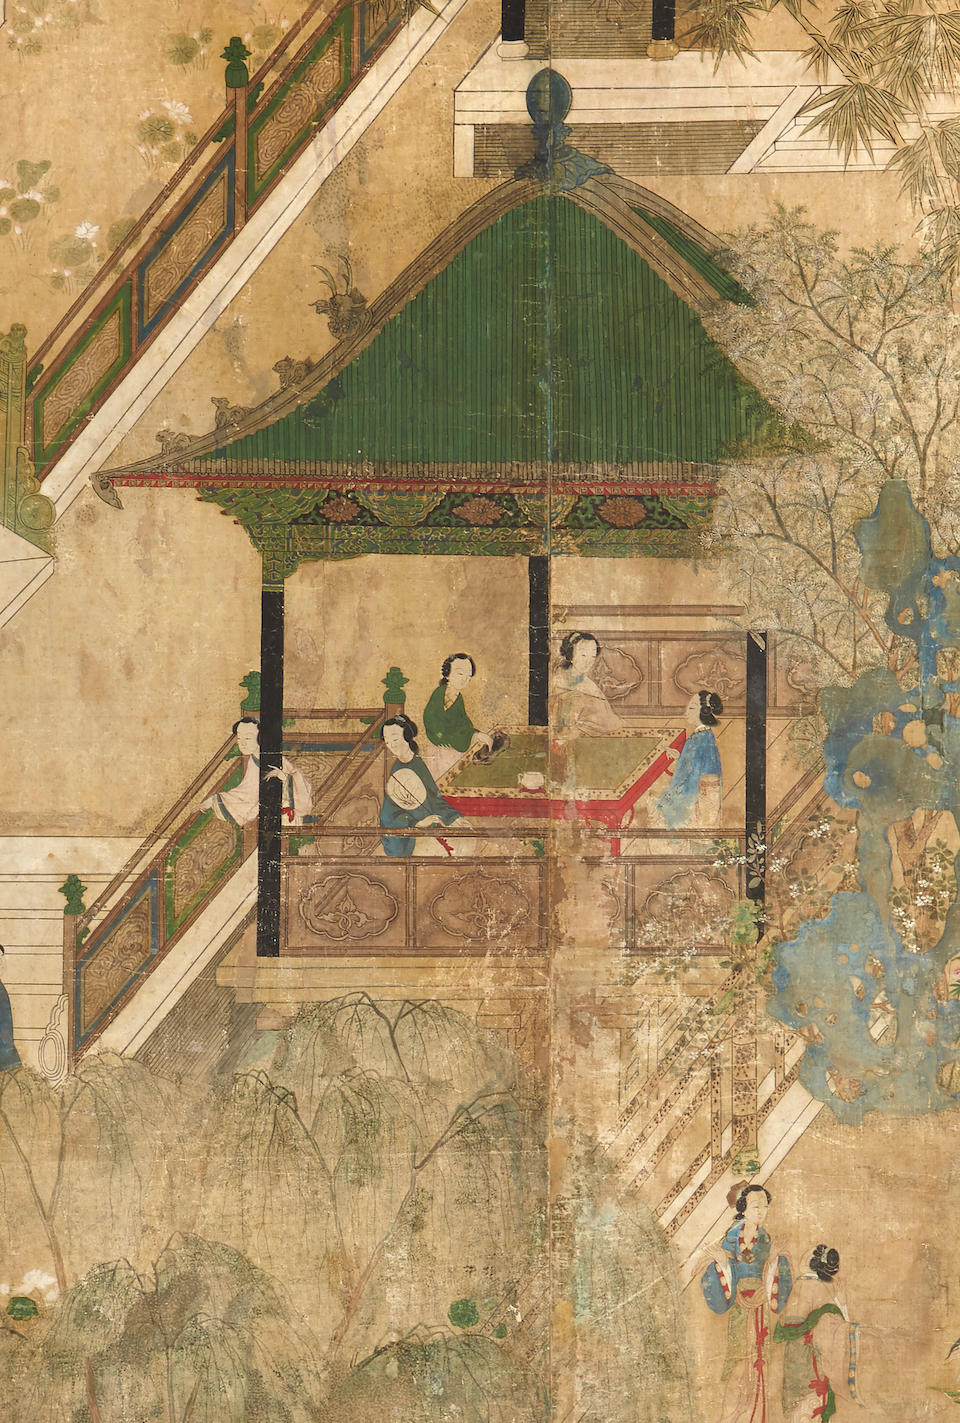 Anonymous (19th/20th century) Palace Ladies in a Garden